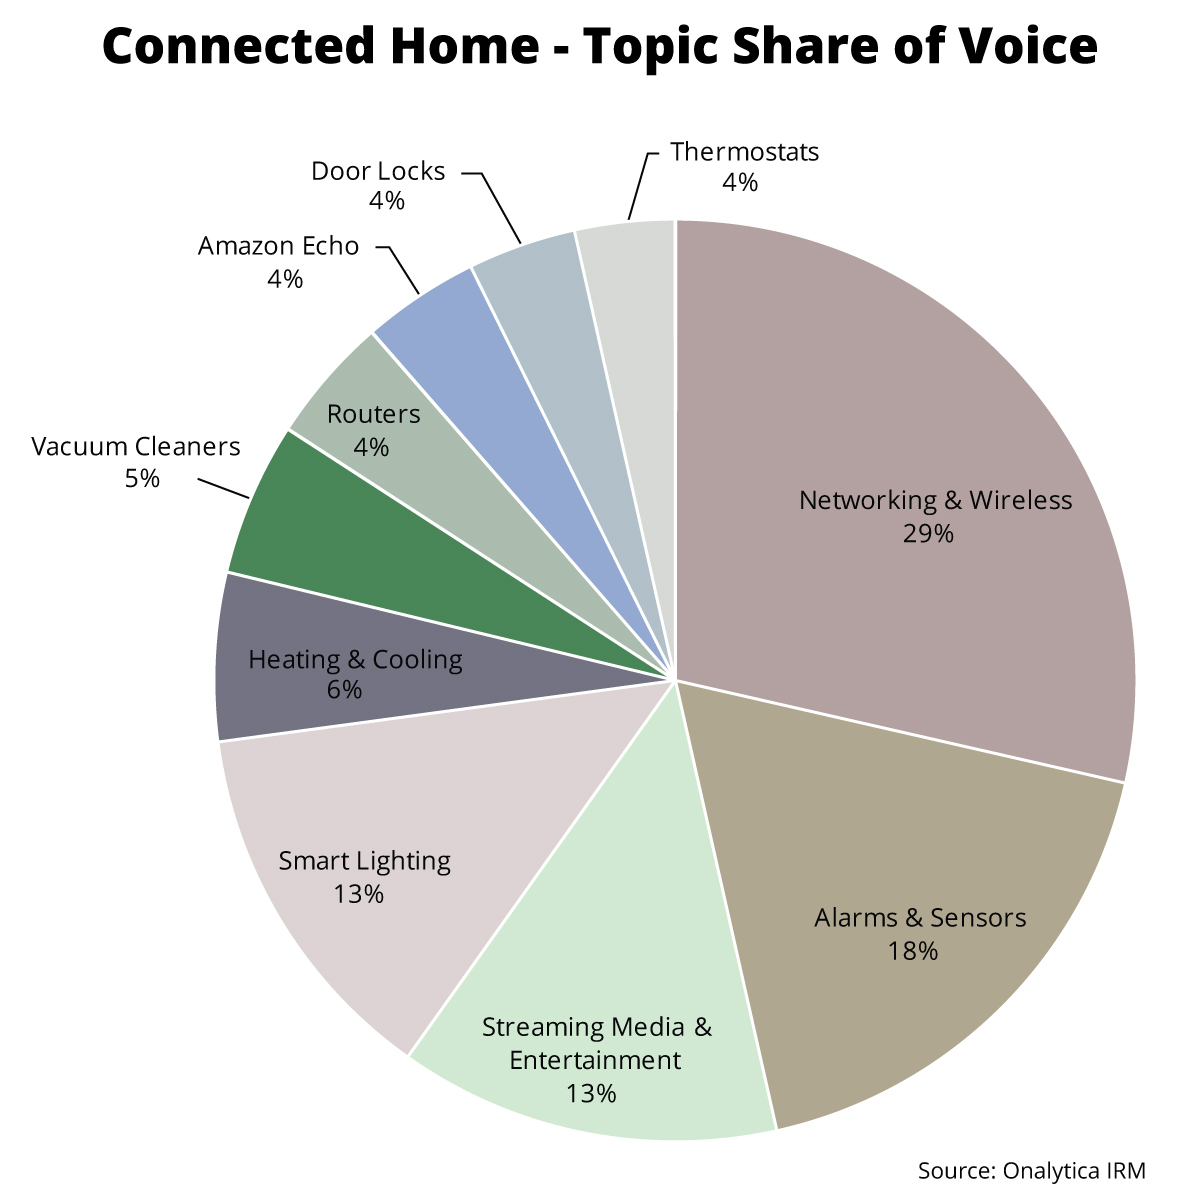 Onalytica - Cannected Home: Top 100 Influencers and Brands Topic Share of Voice